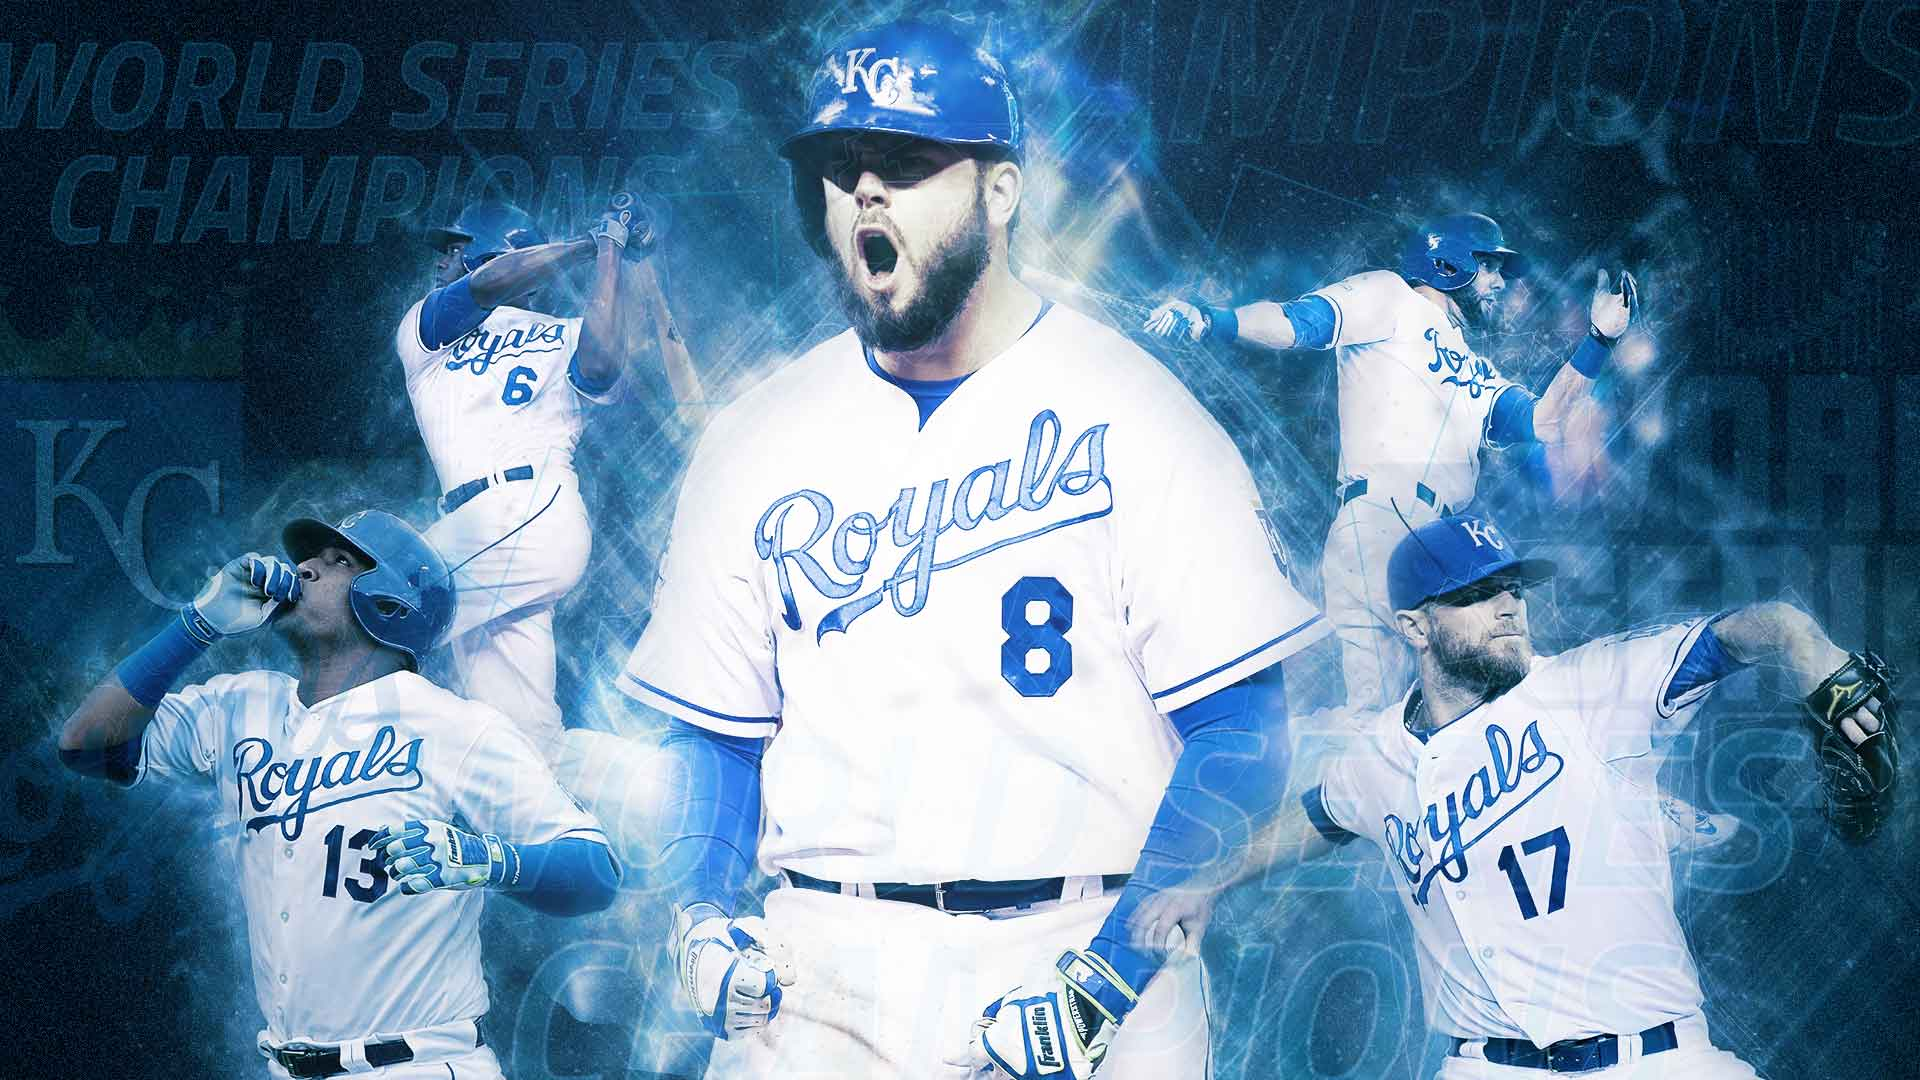 royals-world-series-ftr-110115.jpg